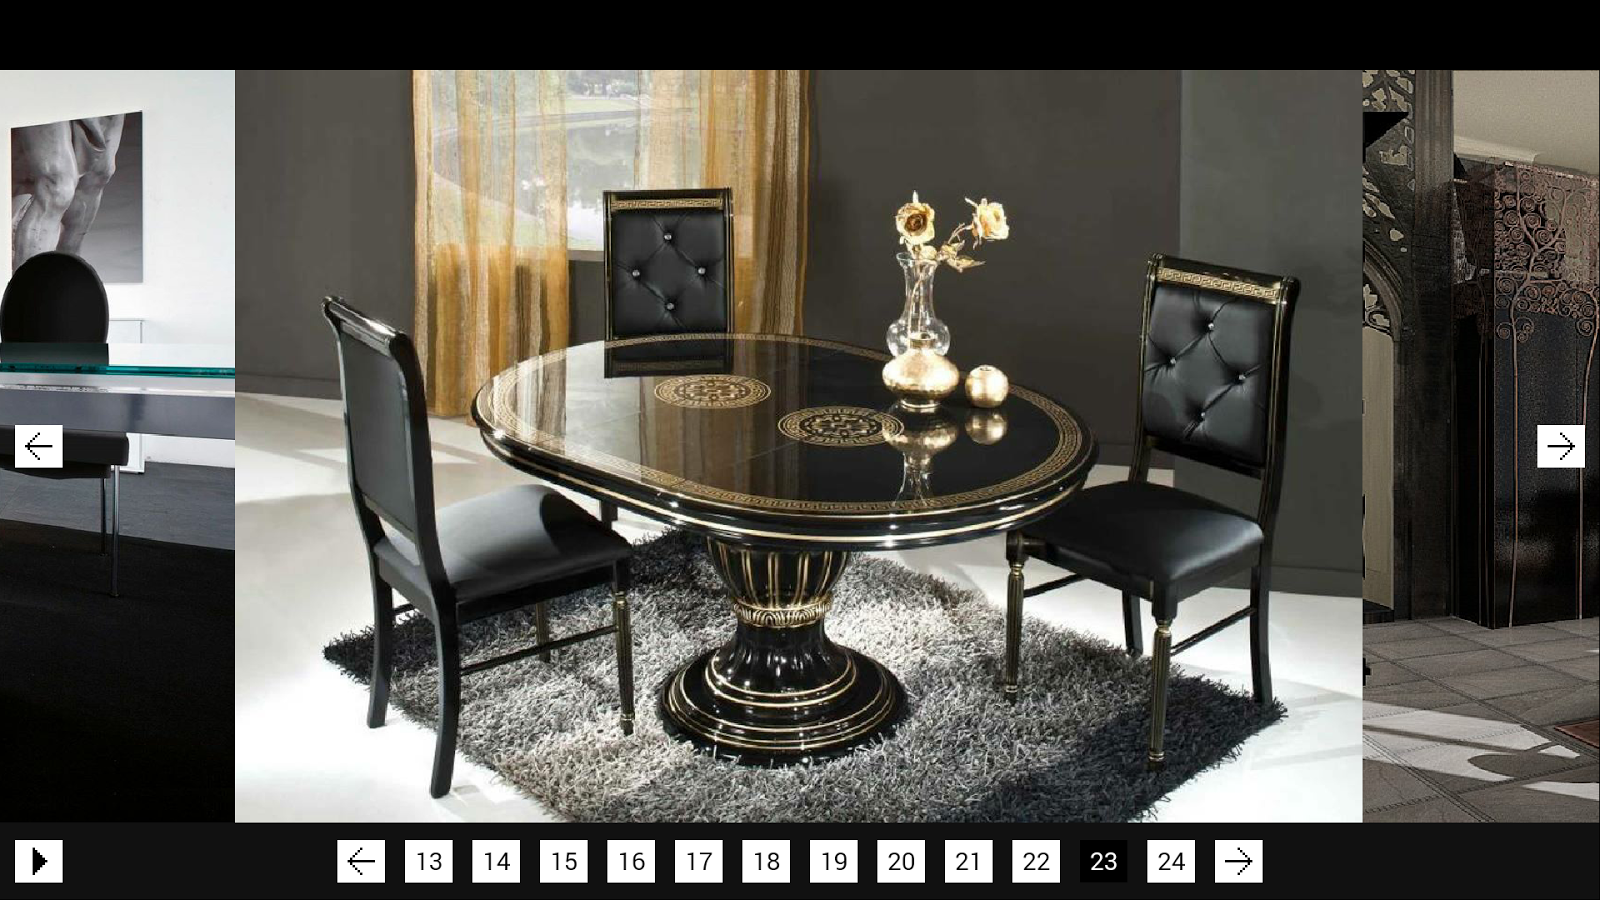 Dining room decor android apps on google play for Llwyn y brain dining room